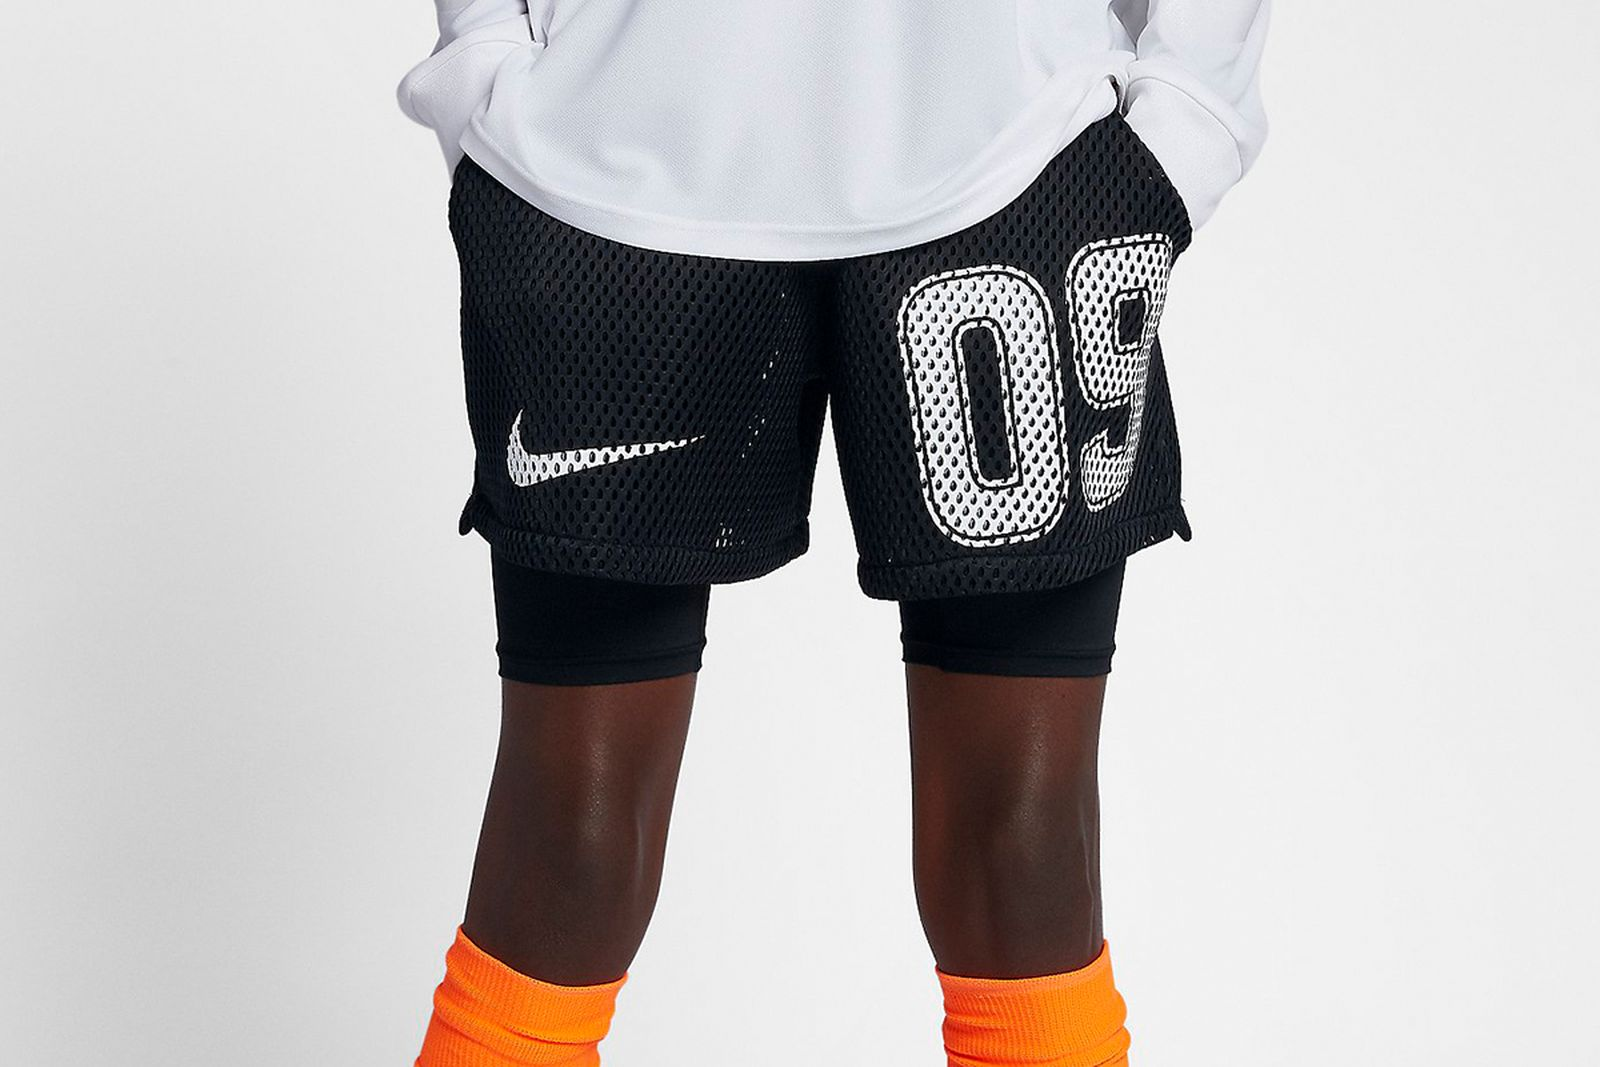 shorts home 2018 FIFA World Cup Nike OFF-WHITE c/o Virgil Abloh